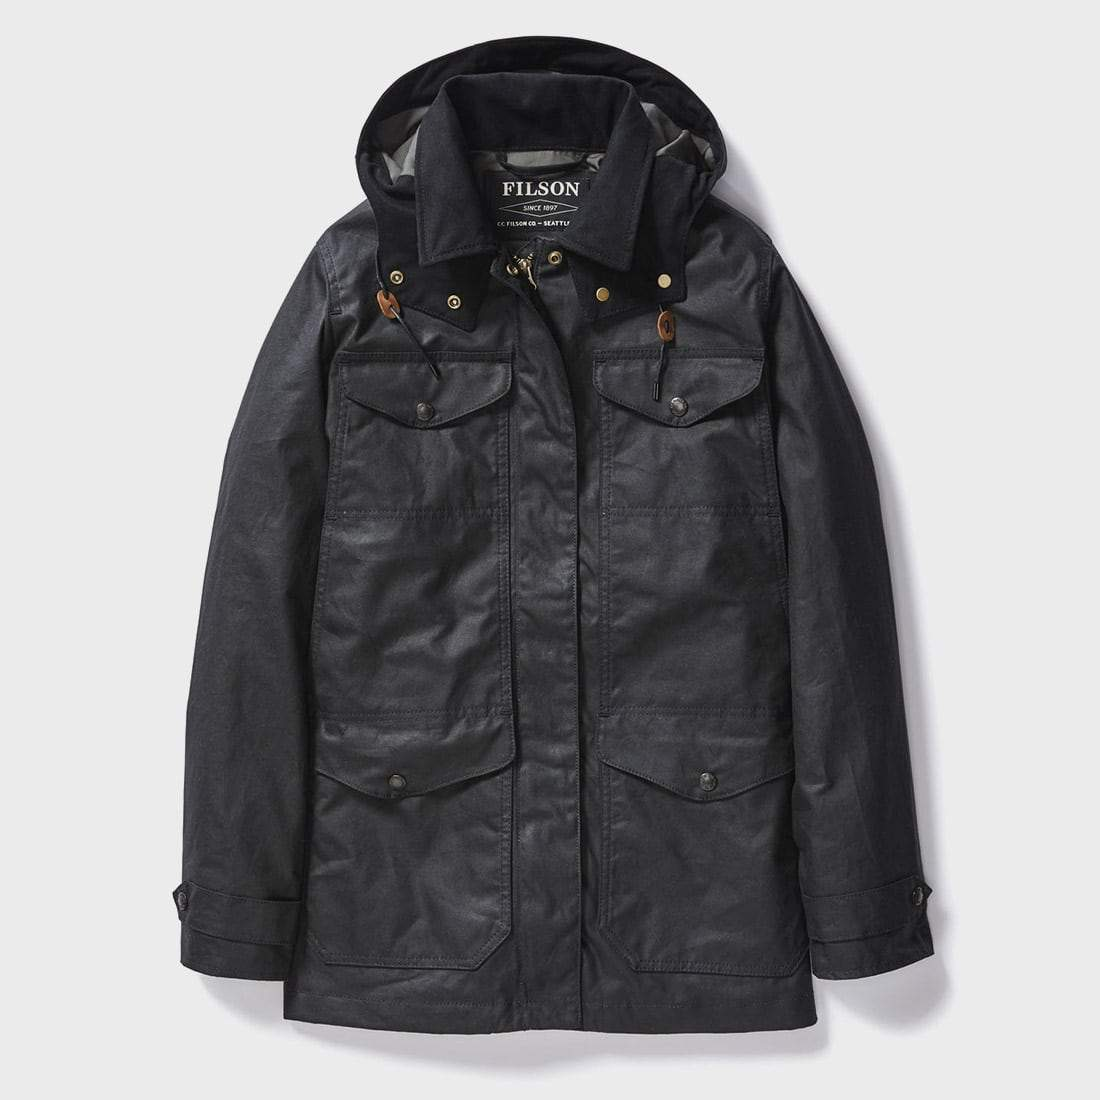 Filson Women's Moorcroft Jacket Smoke